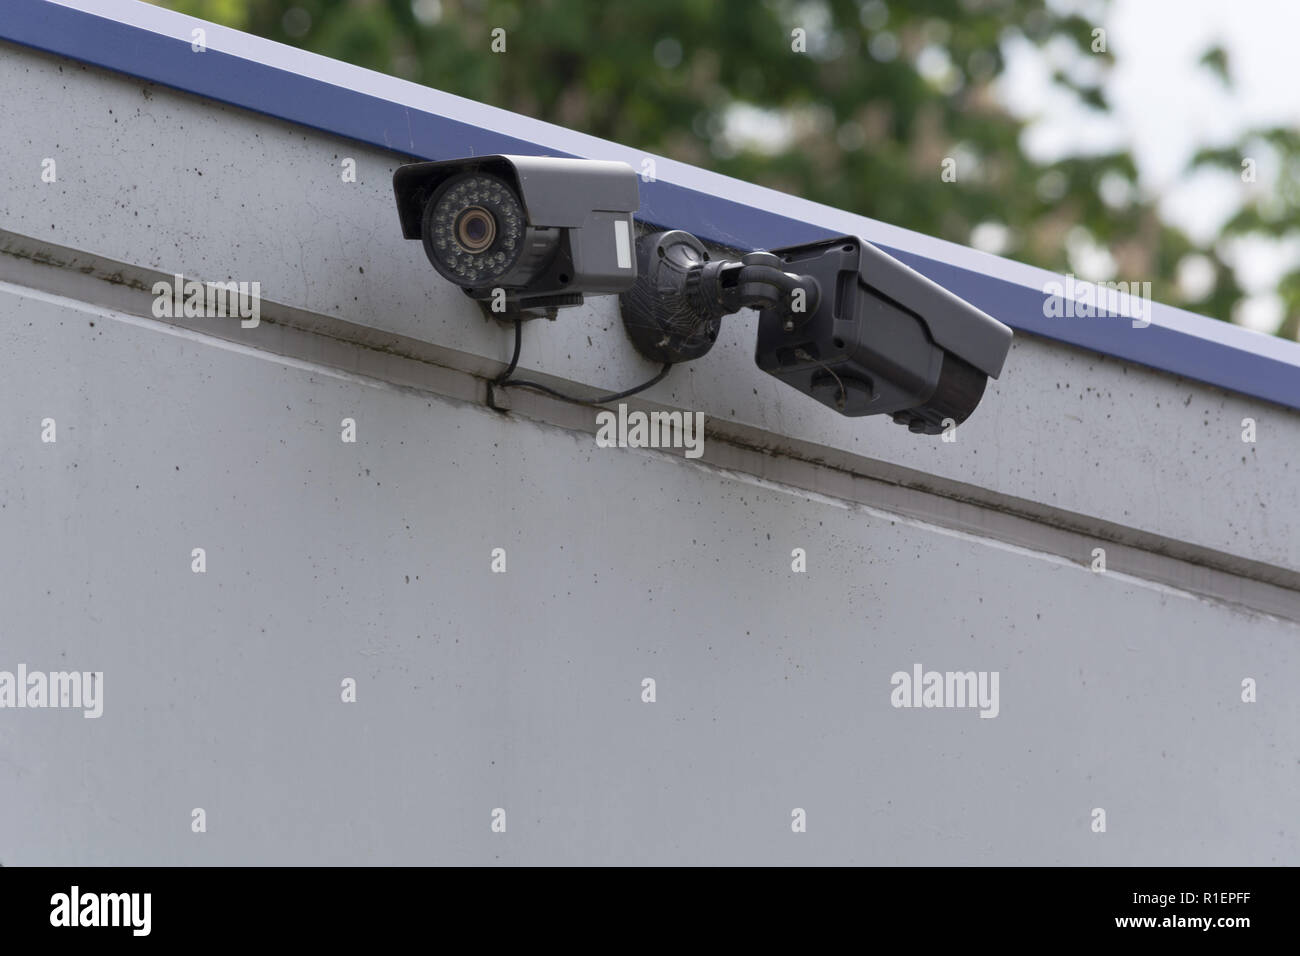 Two CCTV surveillance cameras. Concept security in the office building. - Stock Image